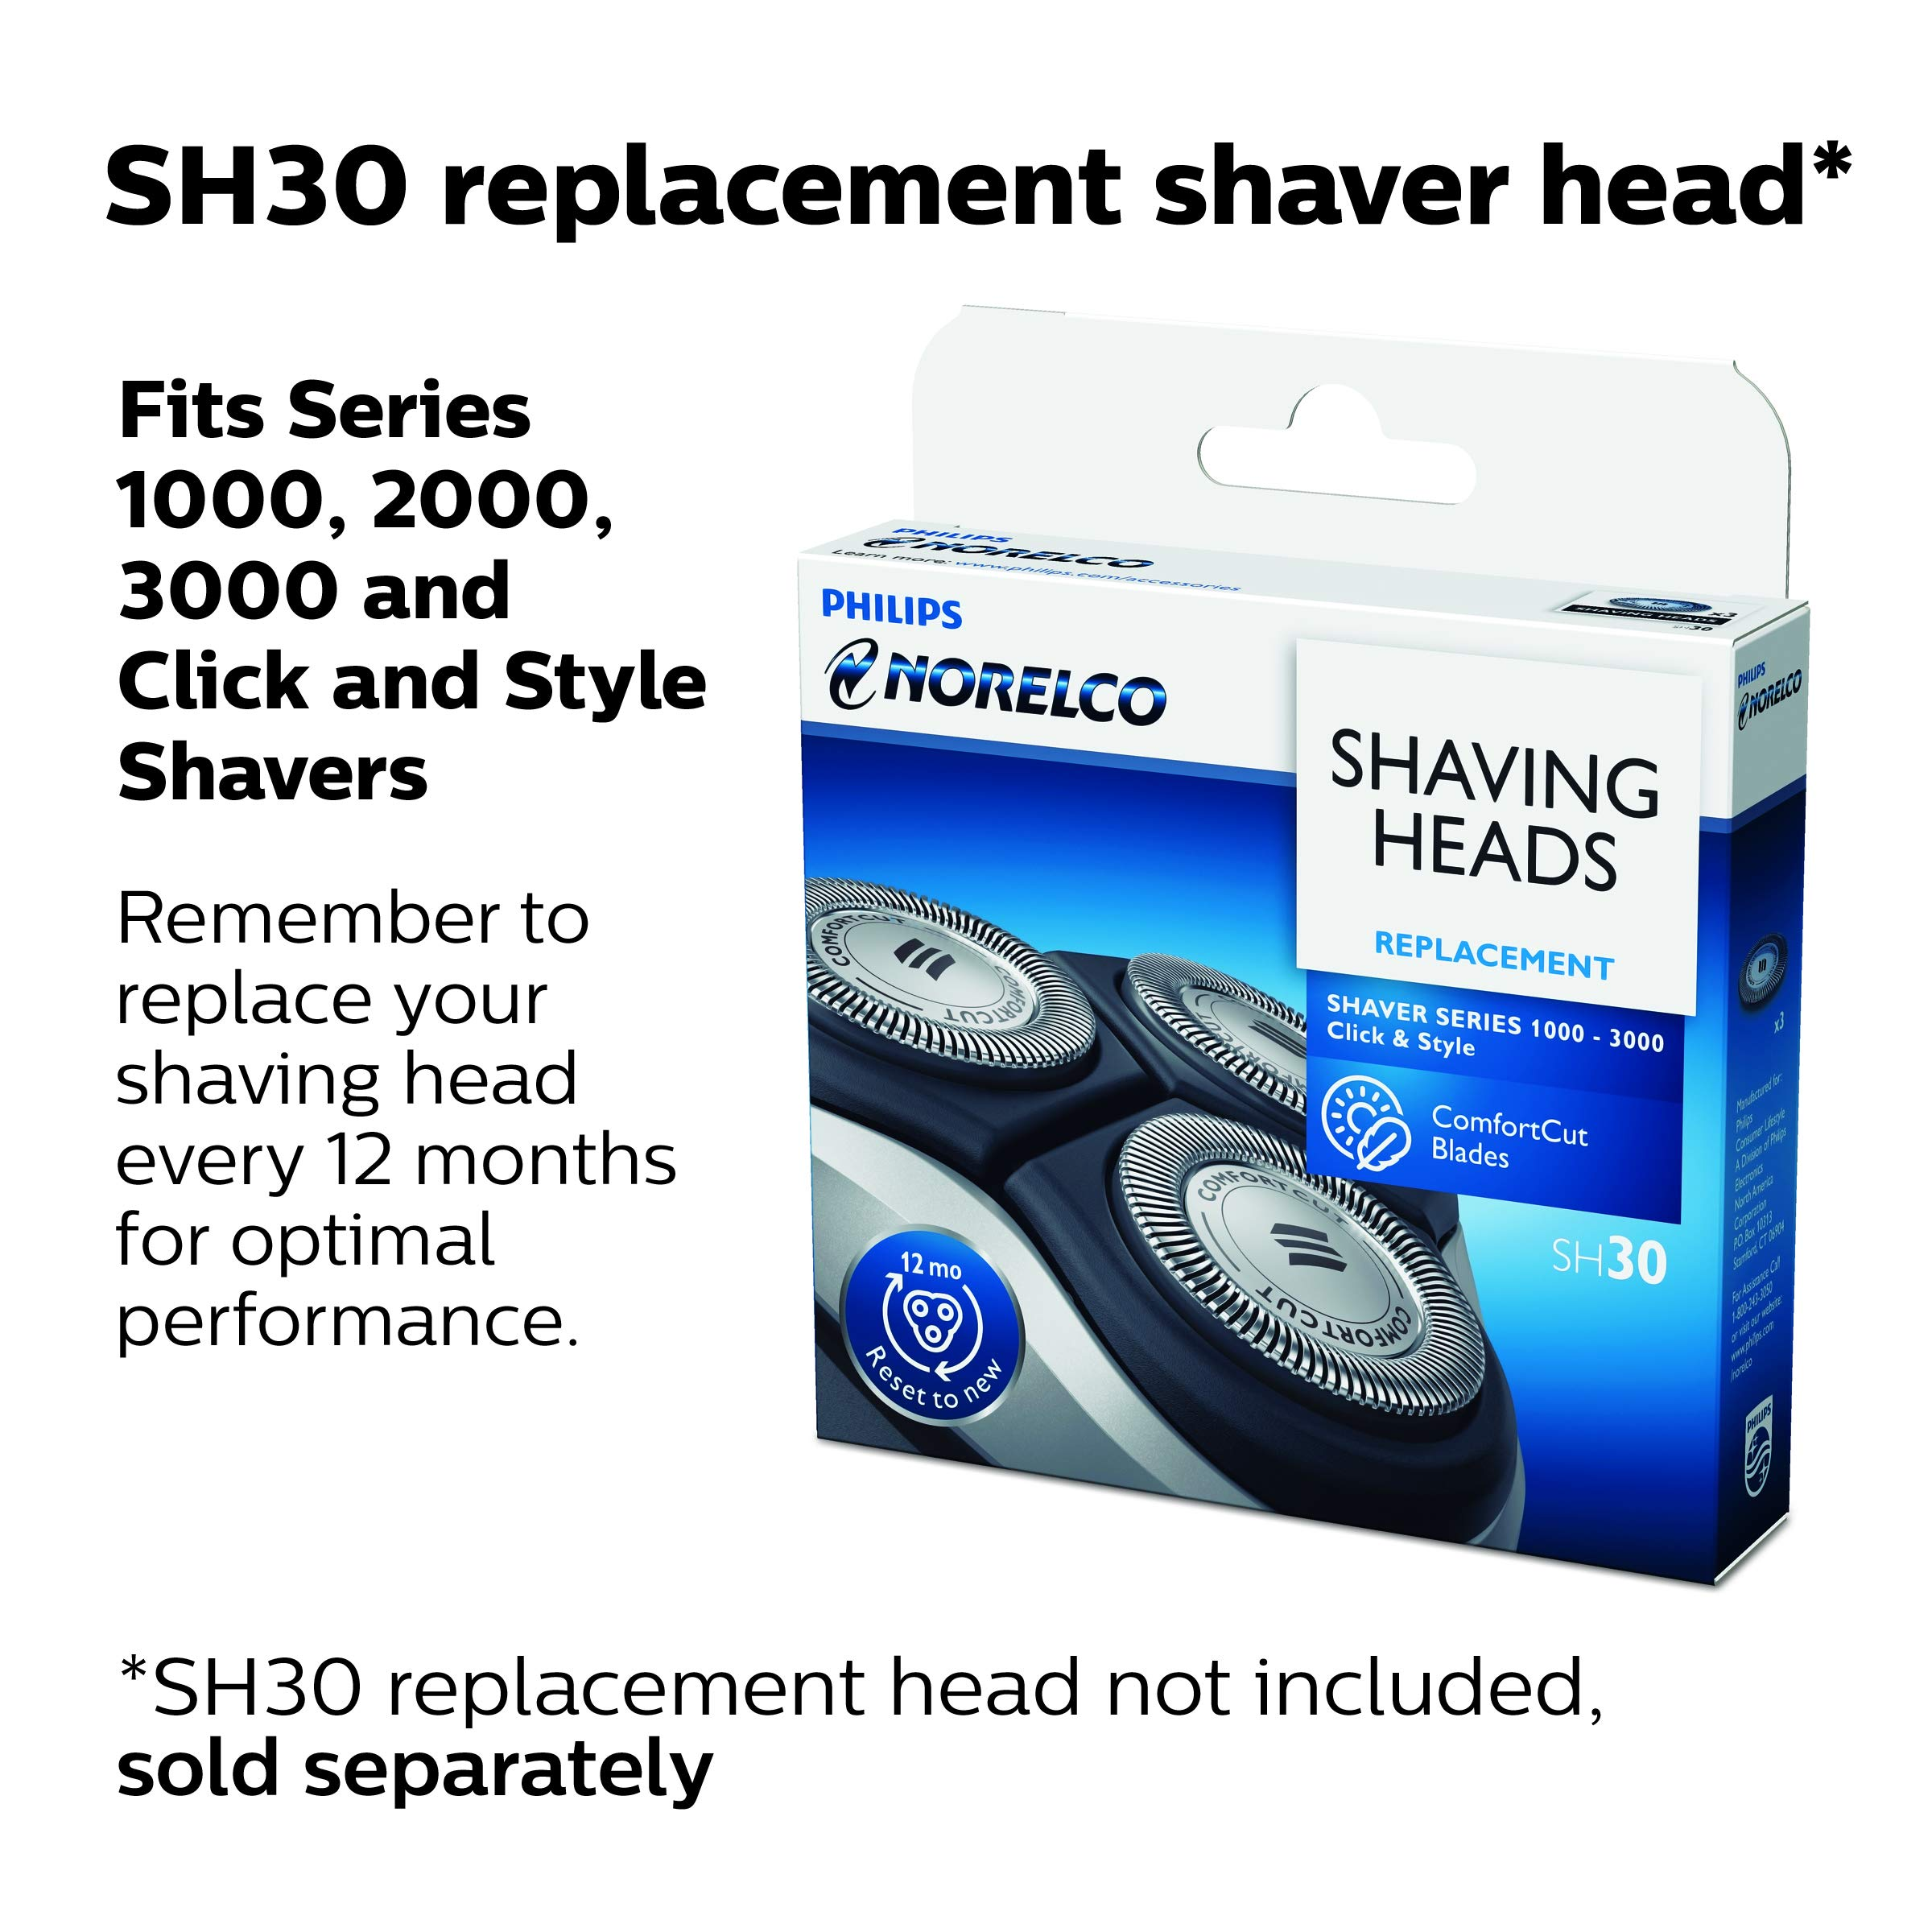 Philips Norelco Corded Electric Shaver 1100, S1150/81 with CloseCut Blade System by Philips Norelco (Image #6)